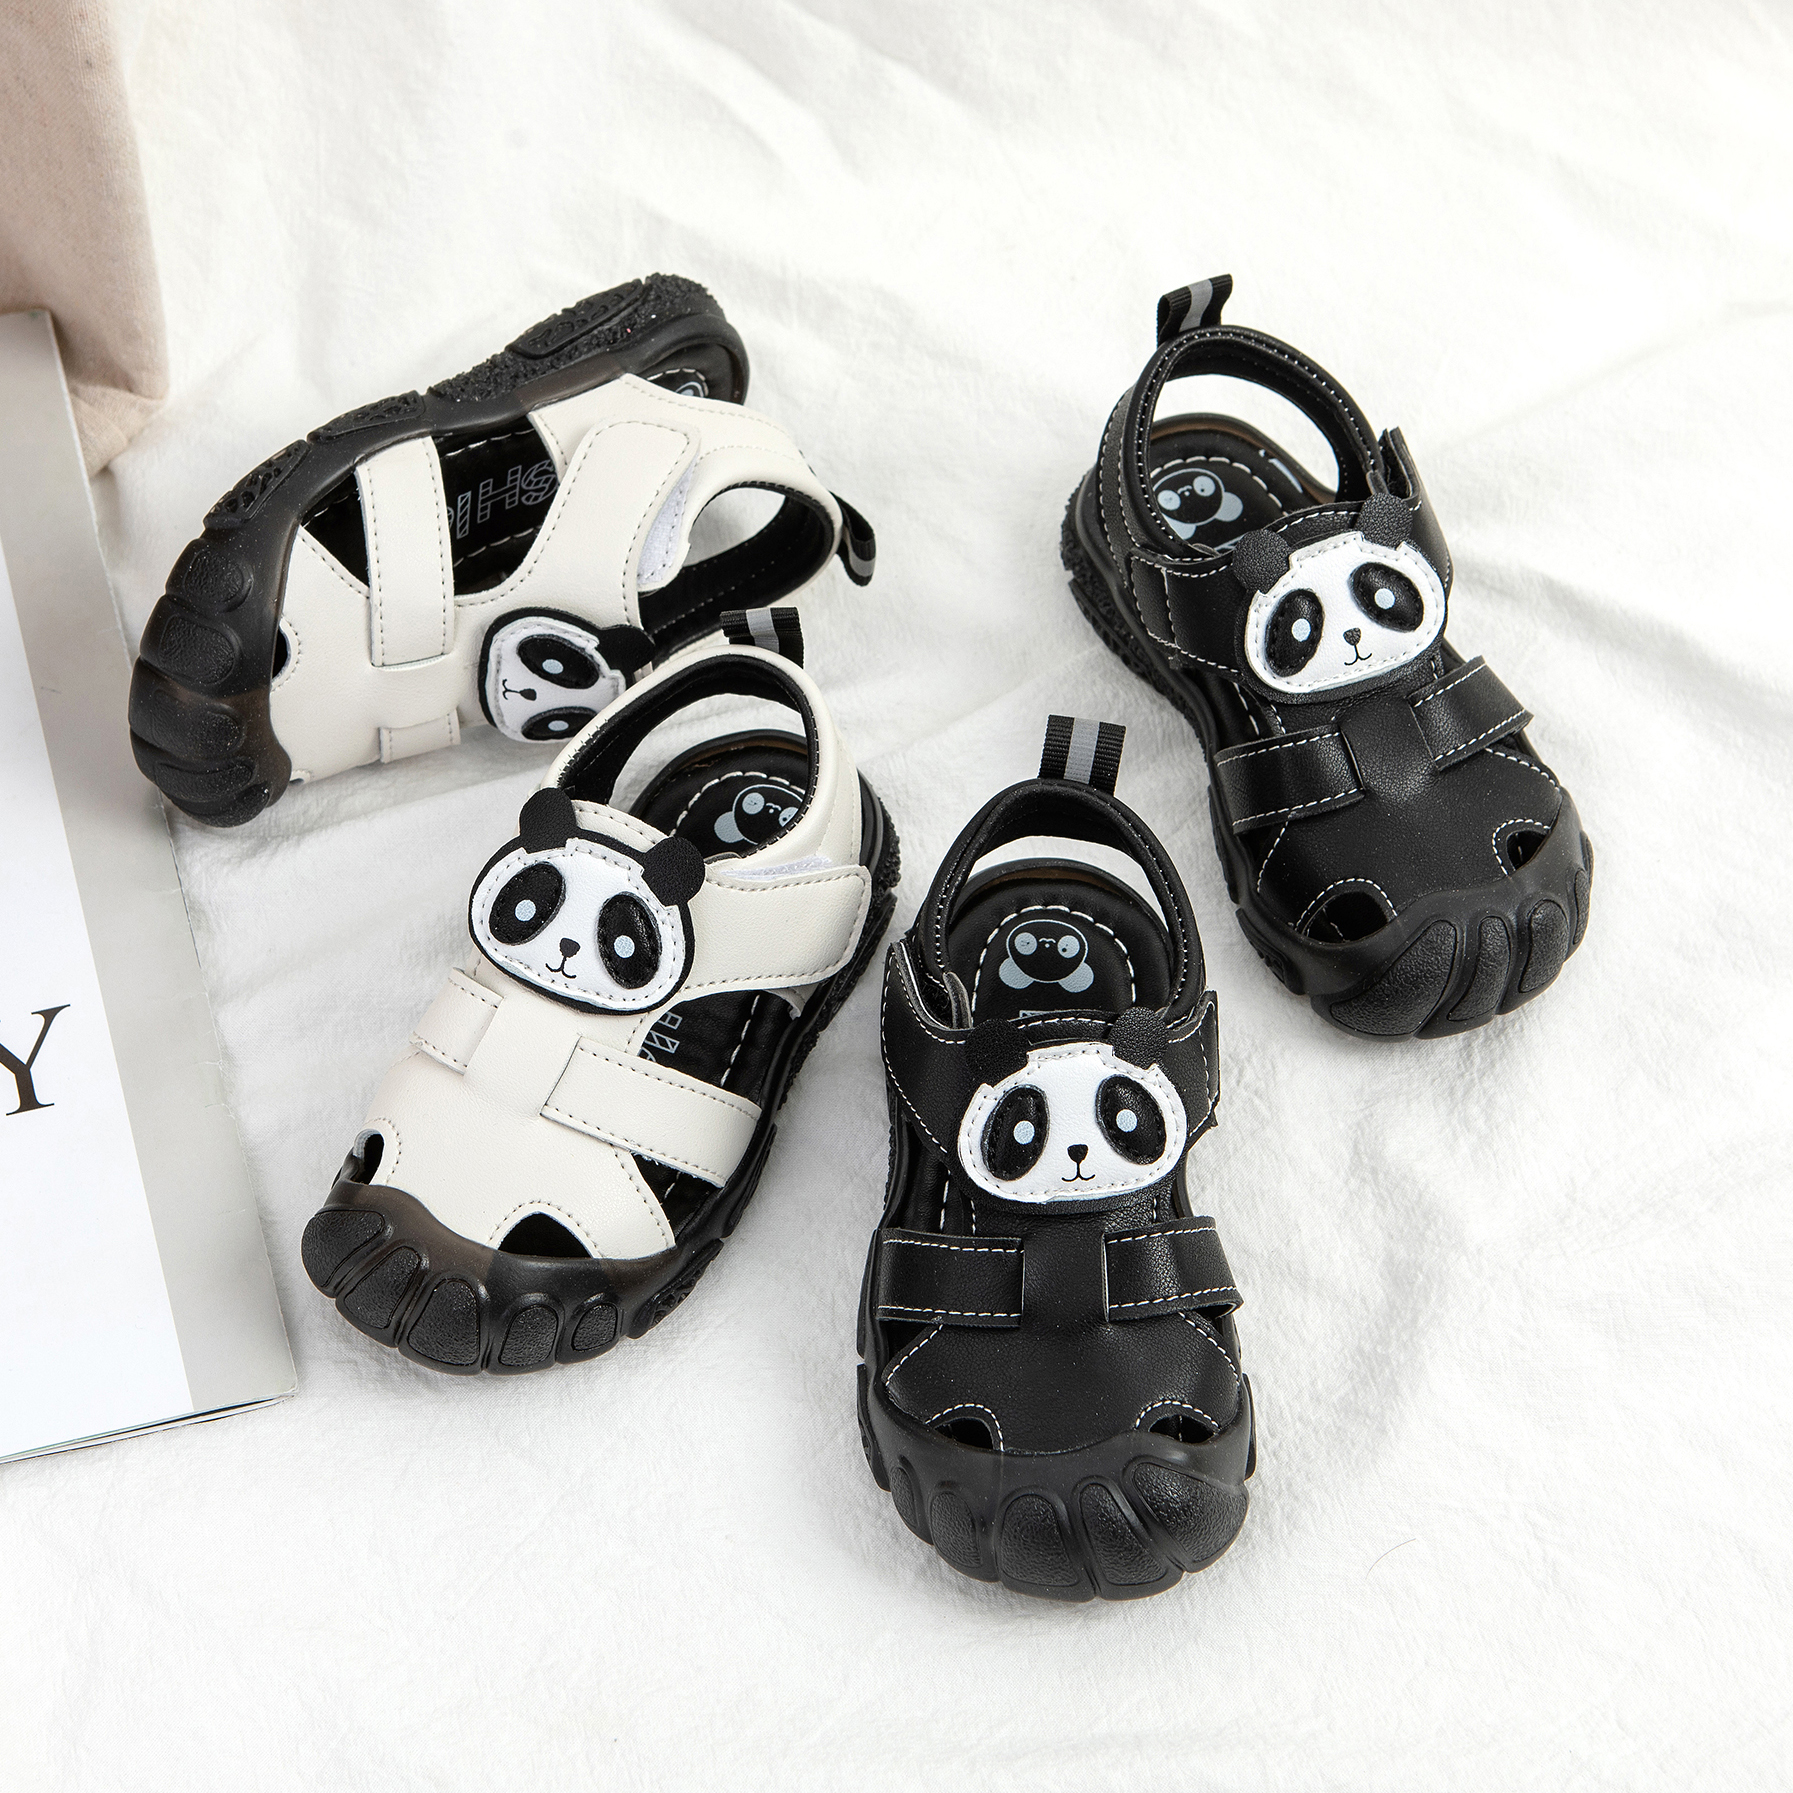 2020 Summer Baby Sandals Shoes Soft Bottom Comfortable Boys Sandals For Baby Beach Shoes White Black Sandals For Kids Children